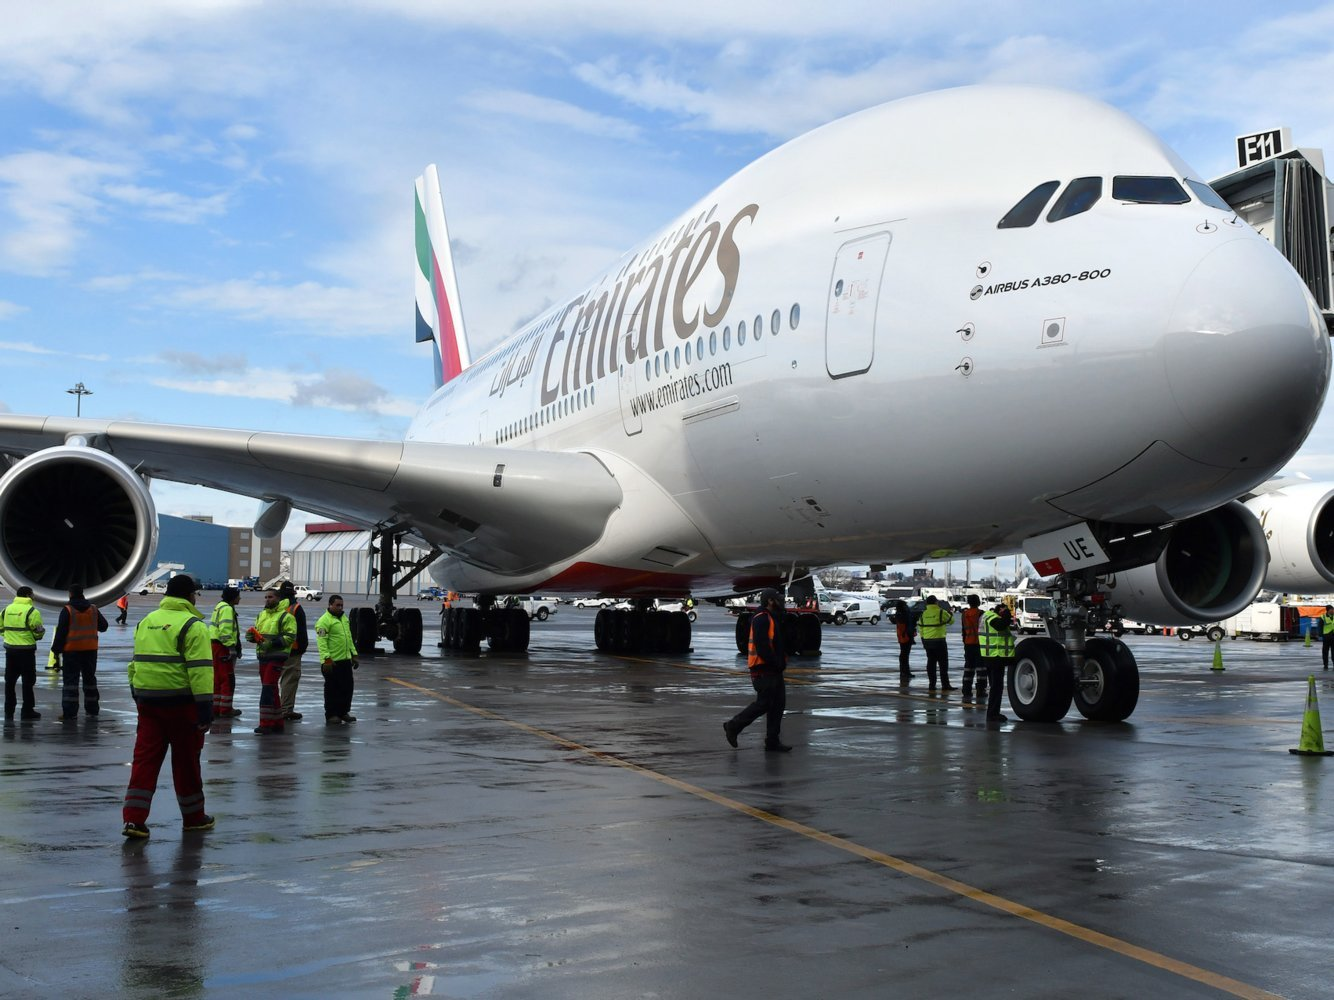 The end is near for the Airbus A380 superjumbo jet. Here's how it went from airline status symbol to reject in just 10 years